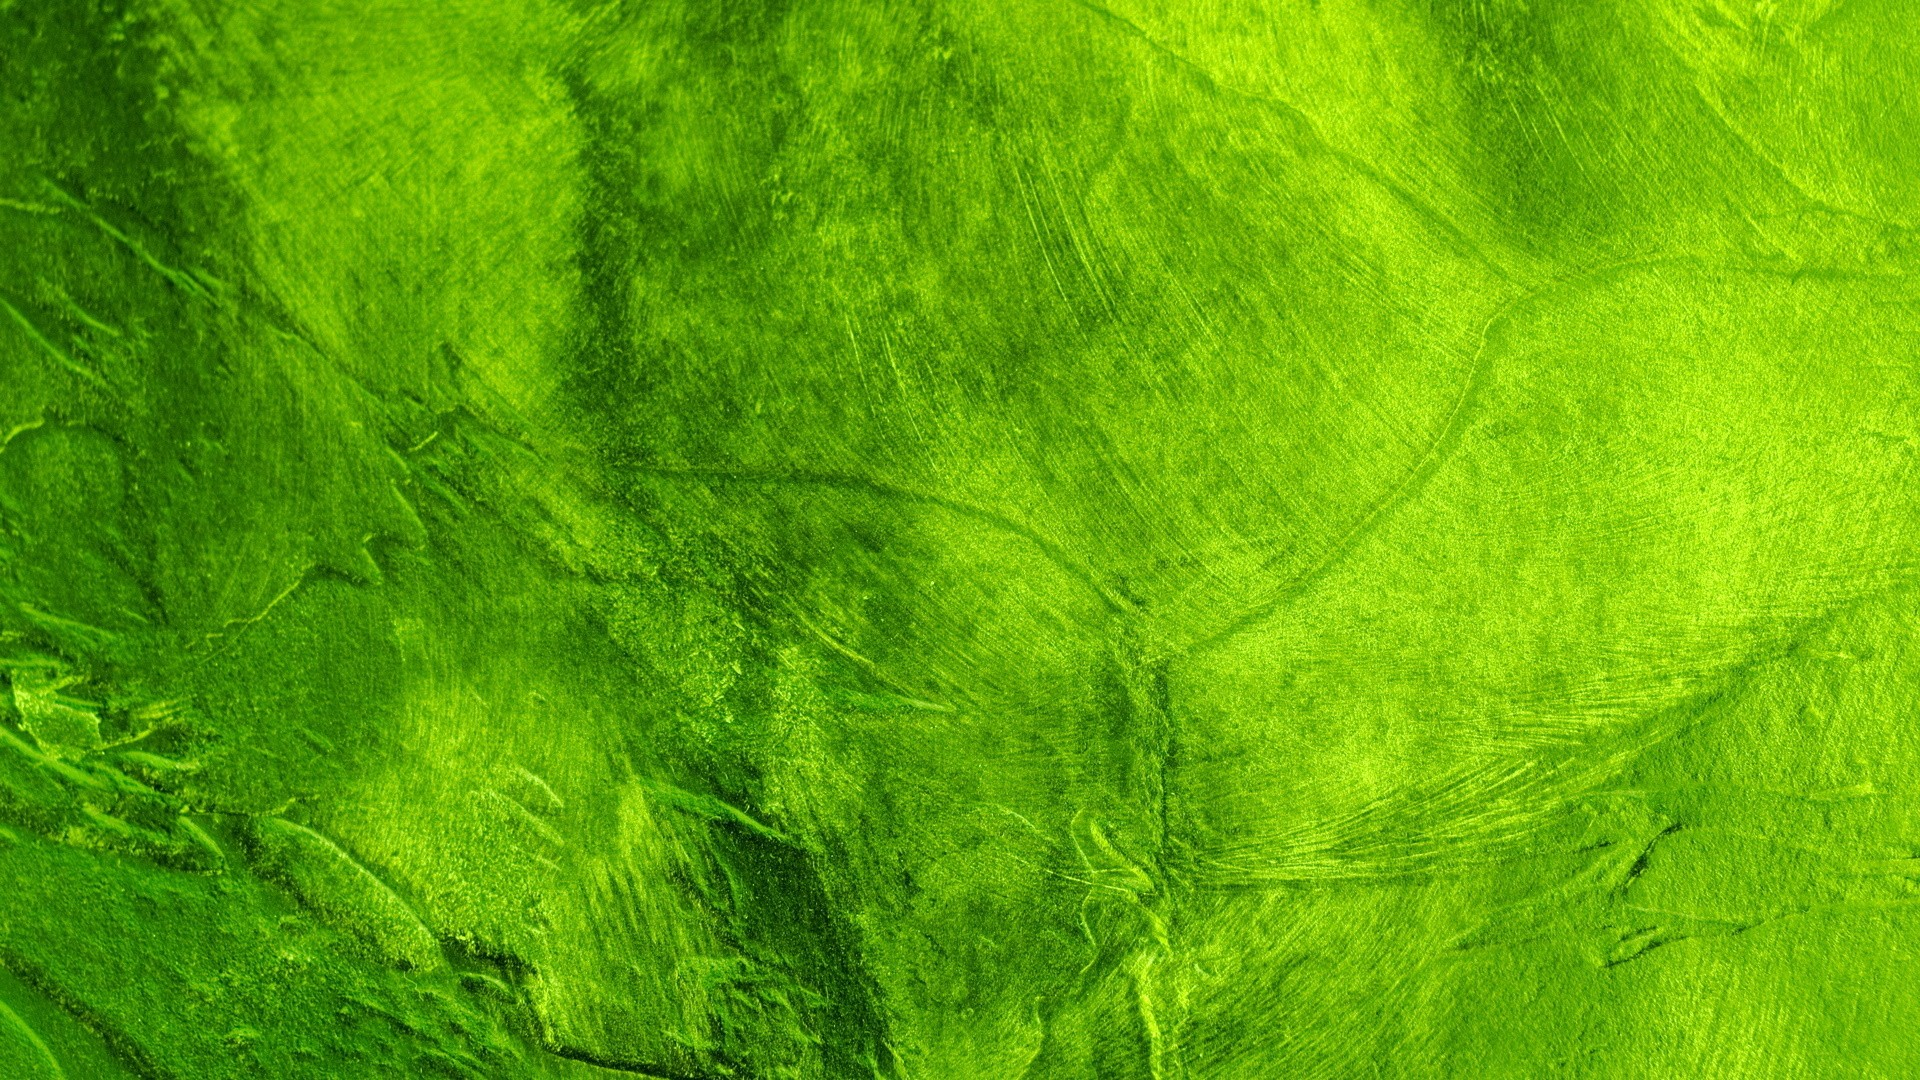 Green Wallpaper 354 Widescreen Nature